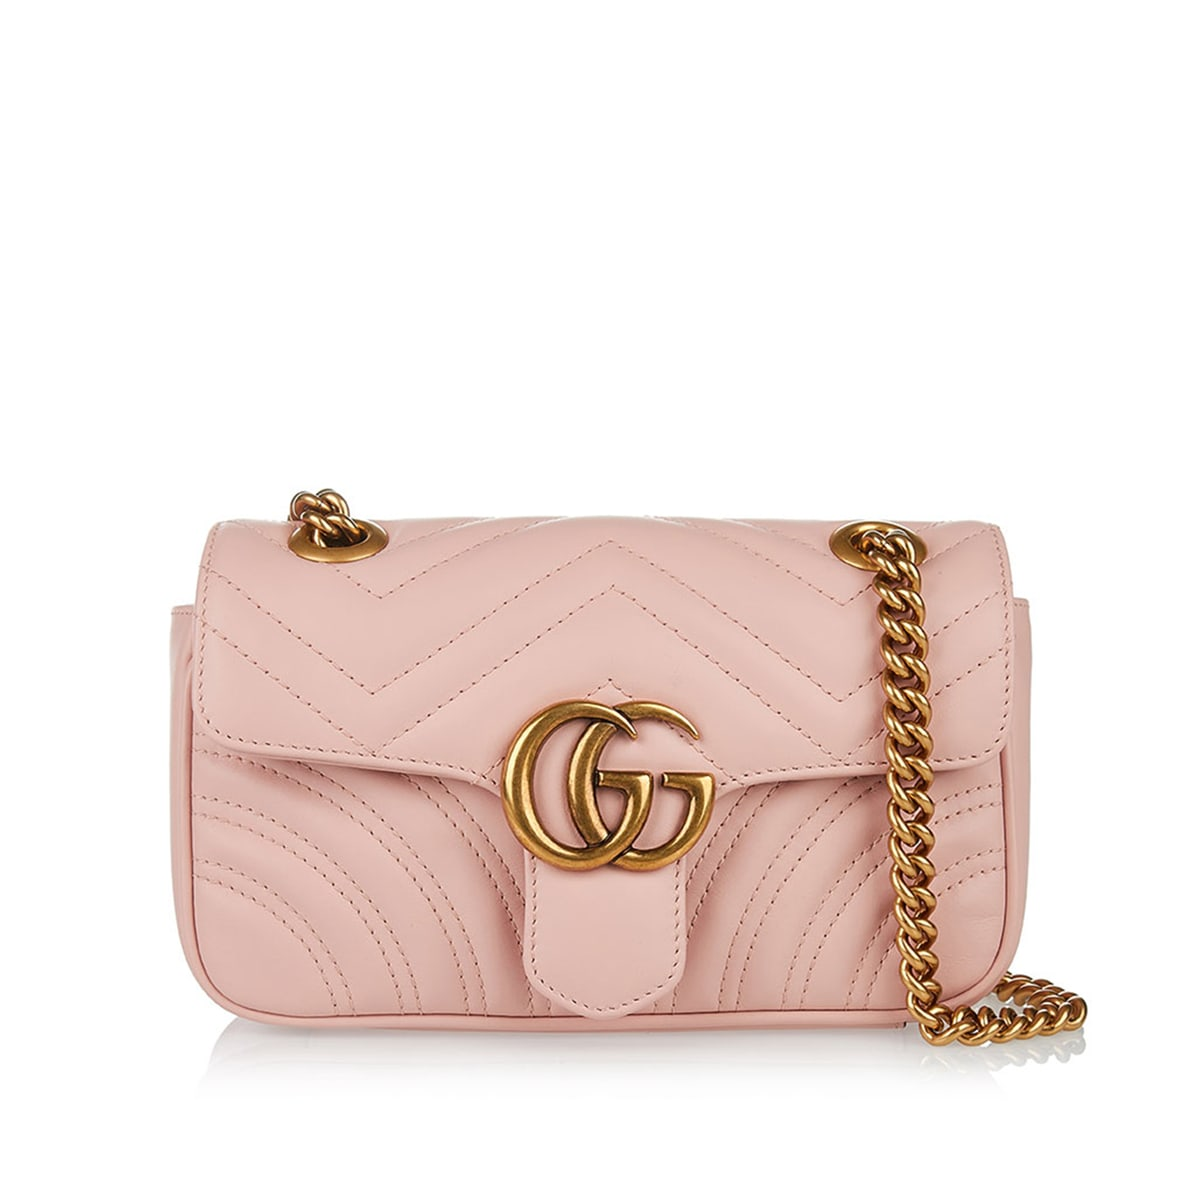 5b767718613 GUCCI GG MARMONT MATELASSE MINI BAG